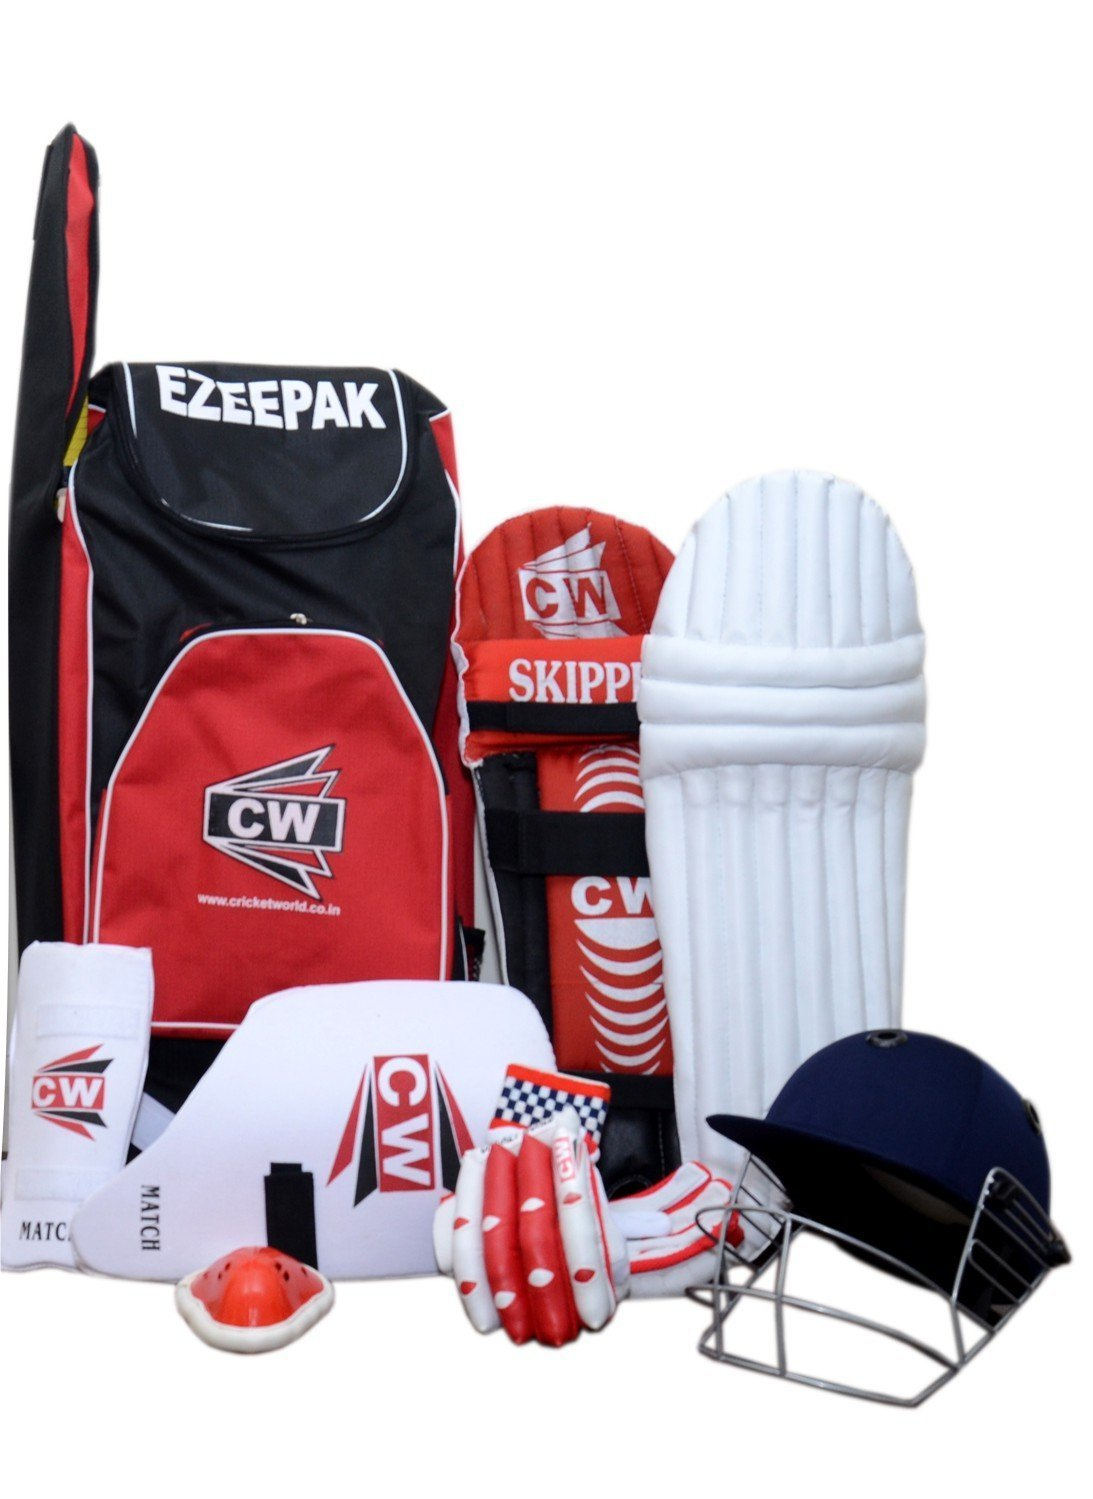 Cricket World Junior Red 7 Without Cricket Bat Sports Kit